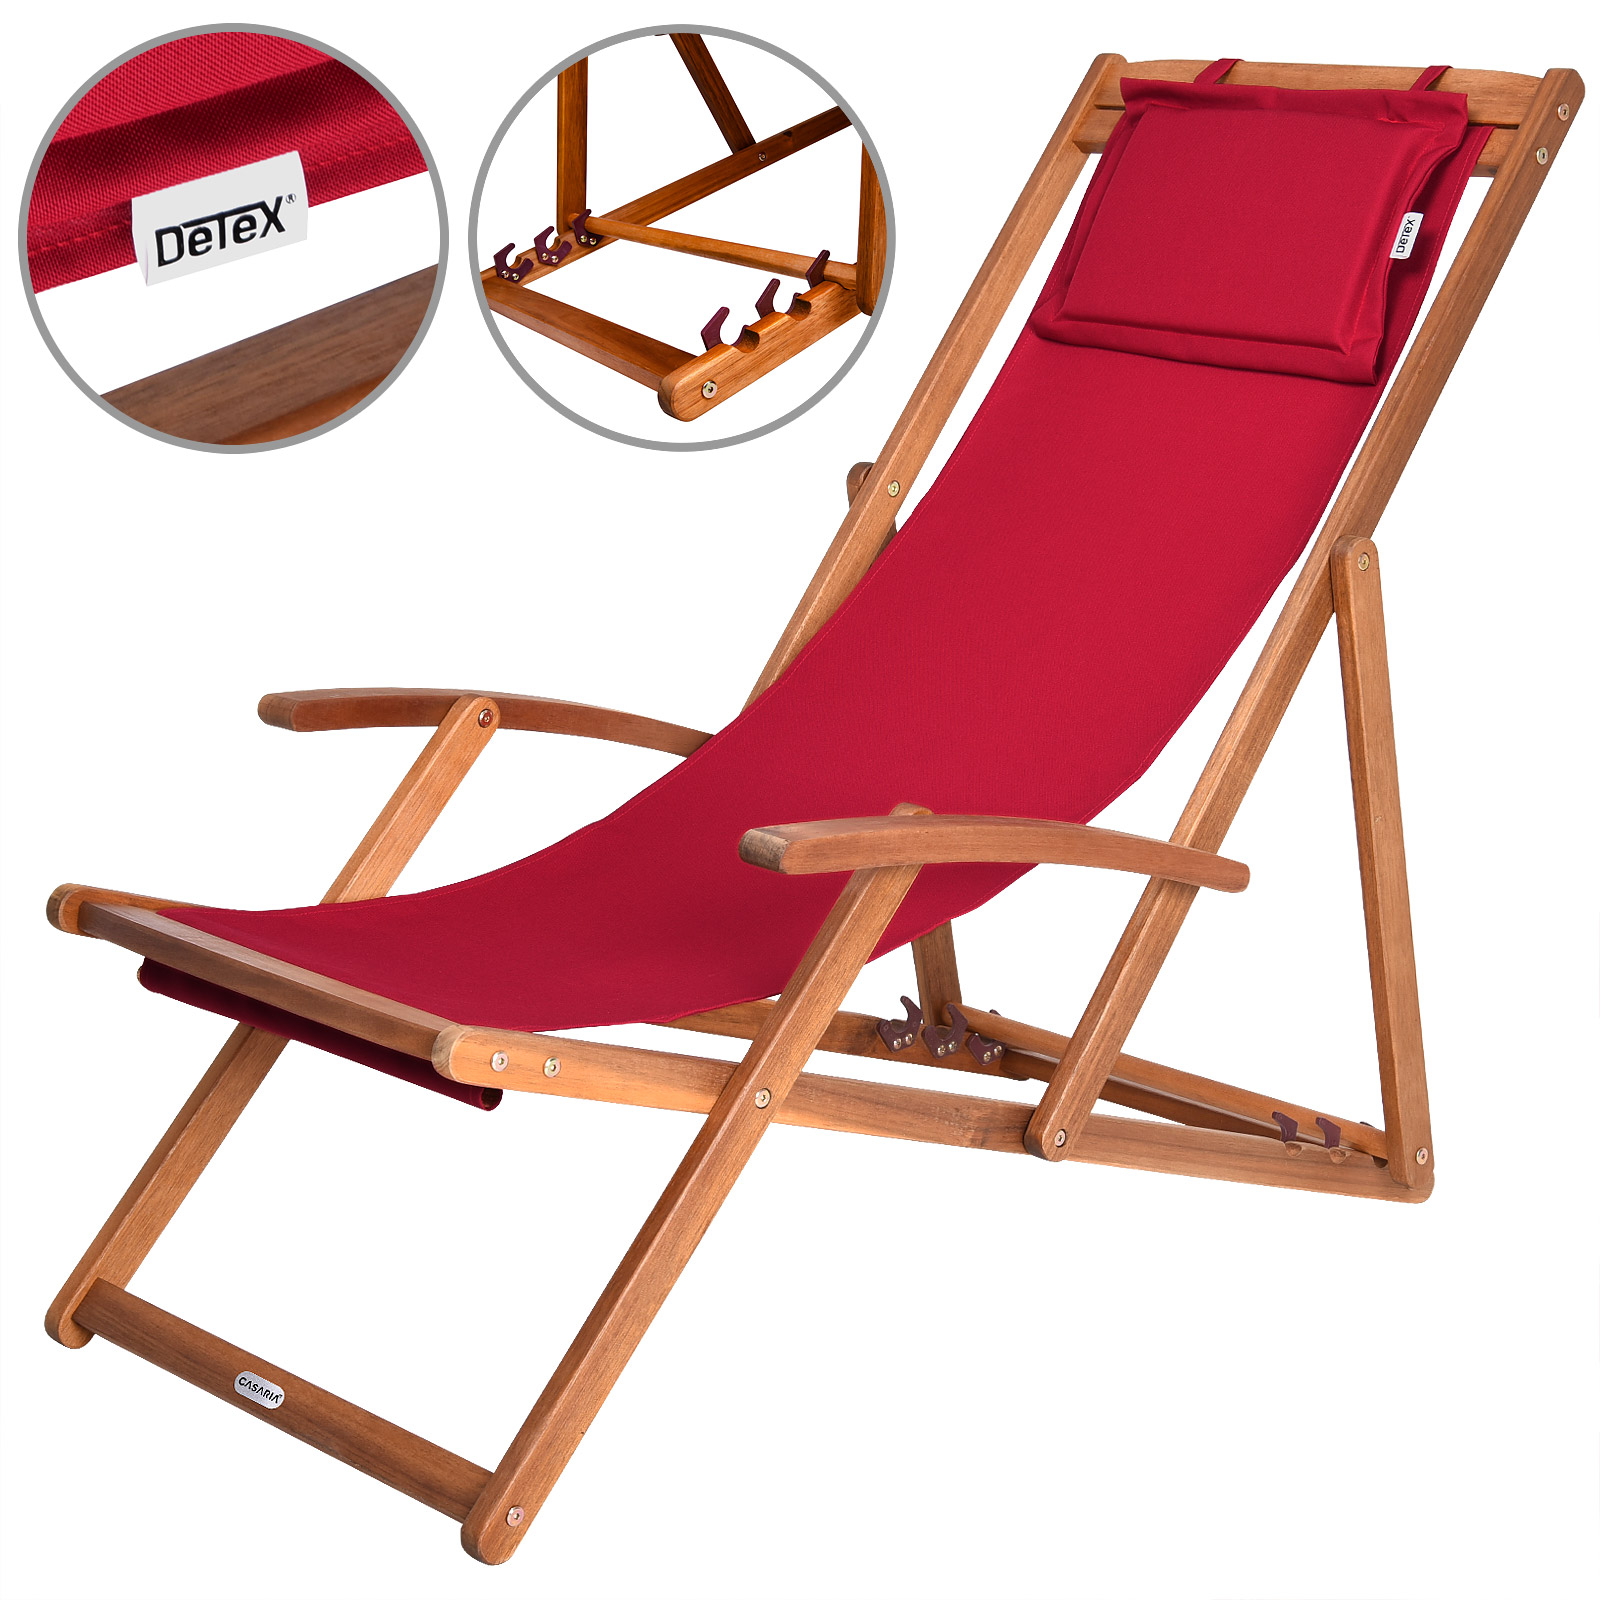 wooden folding deck chairs garden deckchair furniture hardwood chair rh ebay co uk